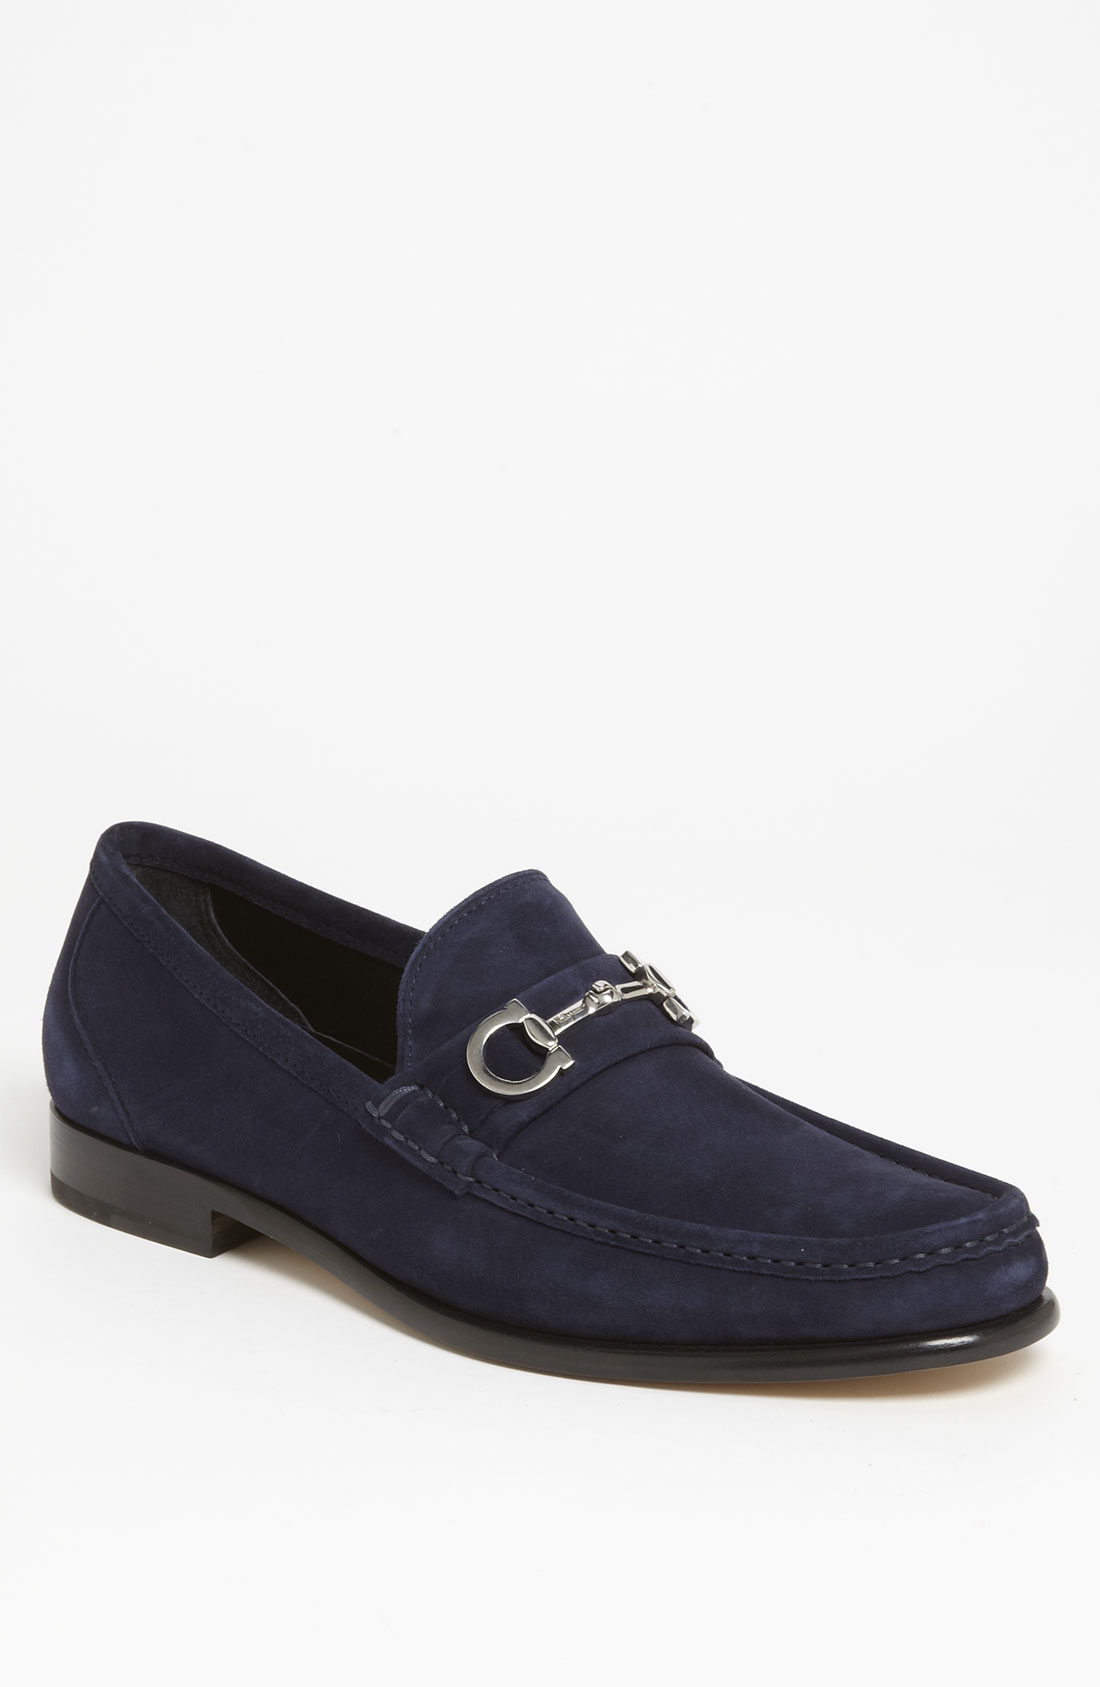 Men's Xray Men's Suede Casual Loafers 13 Medium XRW NAVY Blue This shoes are crafted for all-day comfort. They slip right on and feel like slippers on the foot, and they would not complete without their softly-textured finish.